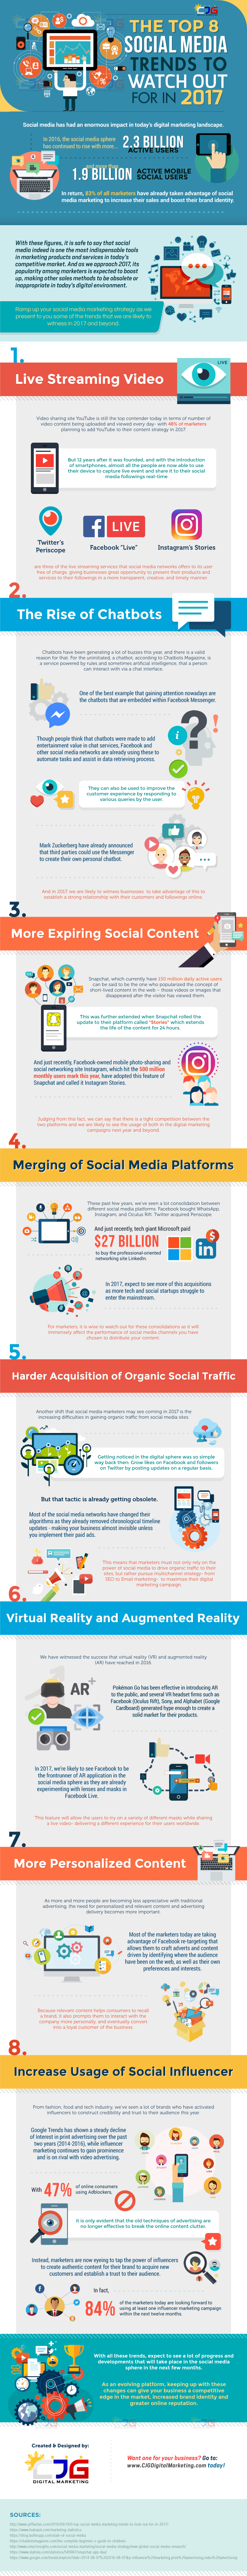 The Top 8 Social Media Trends to Watch Out For [Infographic] | Social Media Today